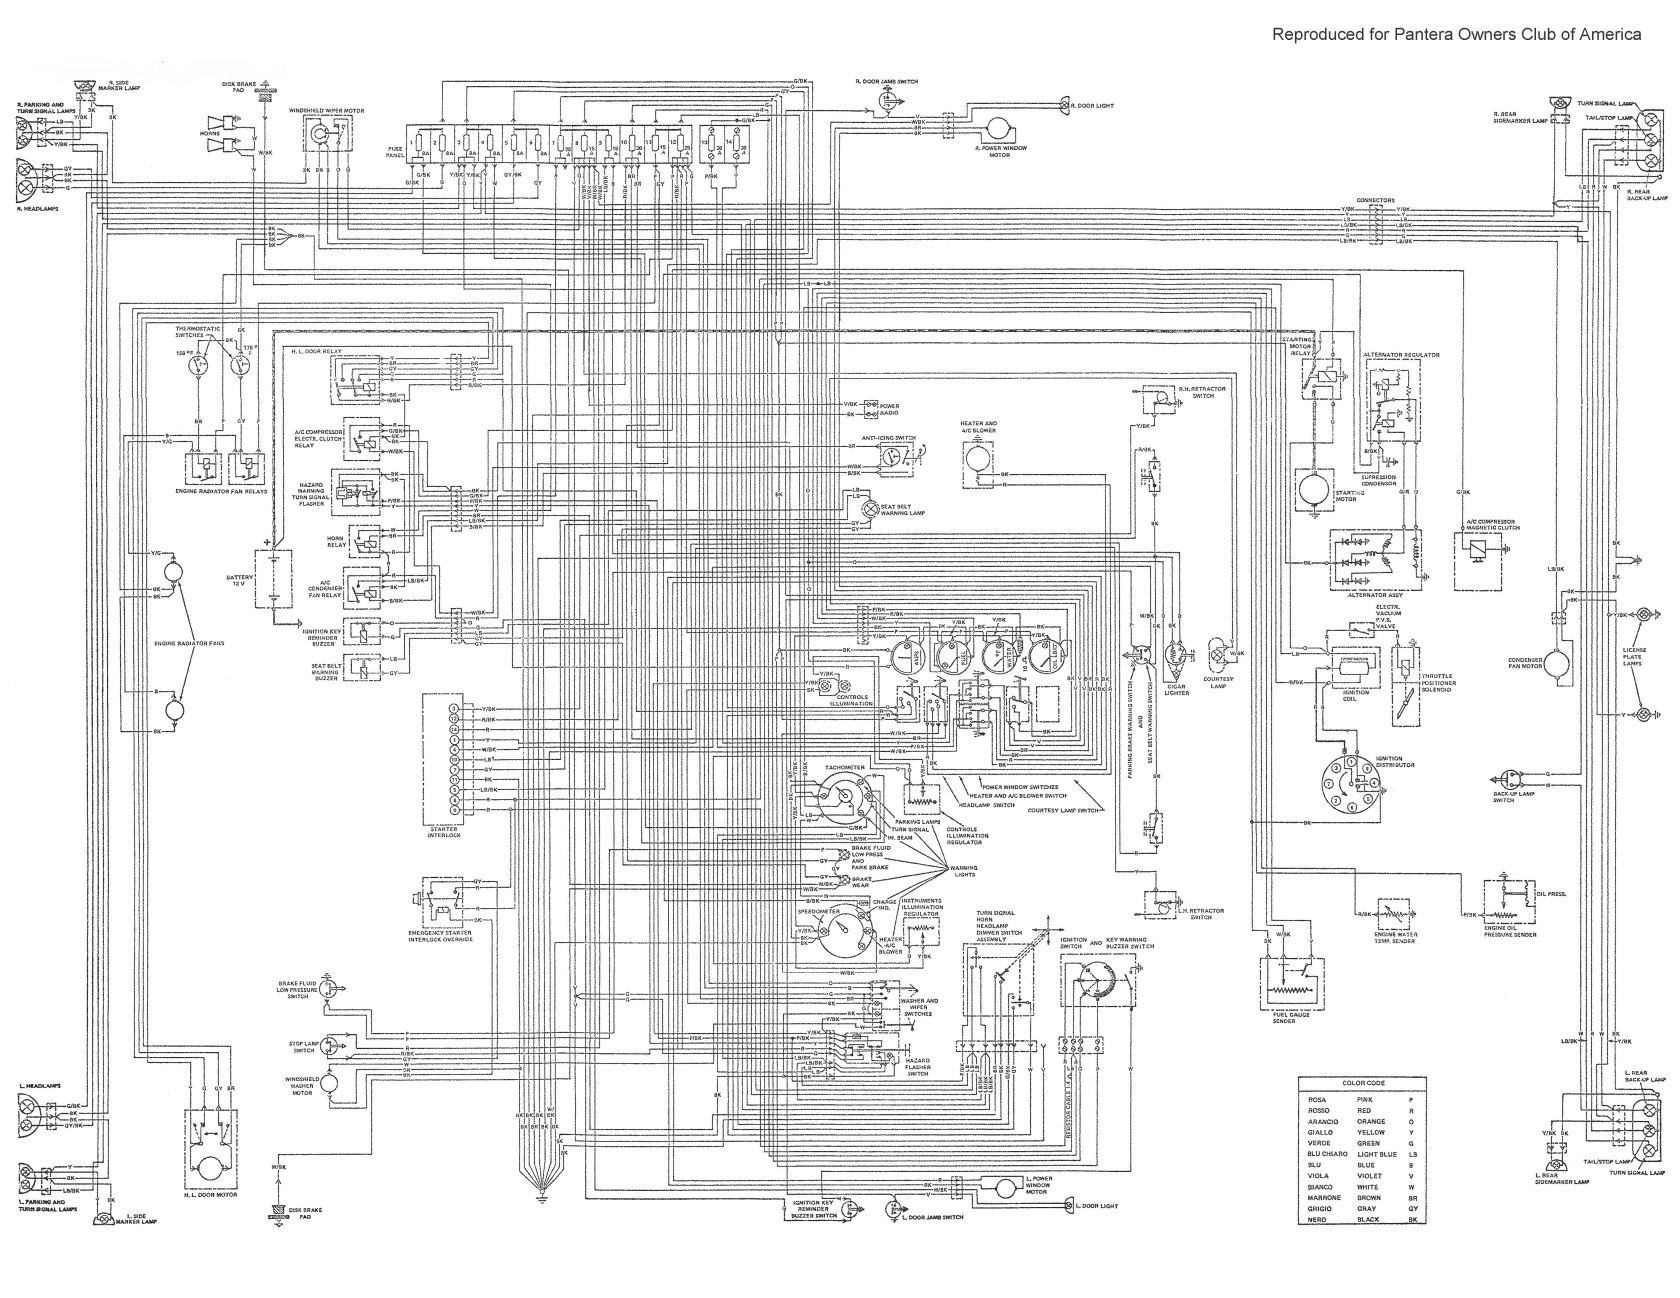 Street Signal Wiring Diagram Schematics Diagrams Traffic Light 04 4300 Turn Diy Enthusiasts U2022 Rh Broadwaycomputers Us